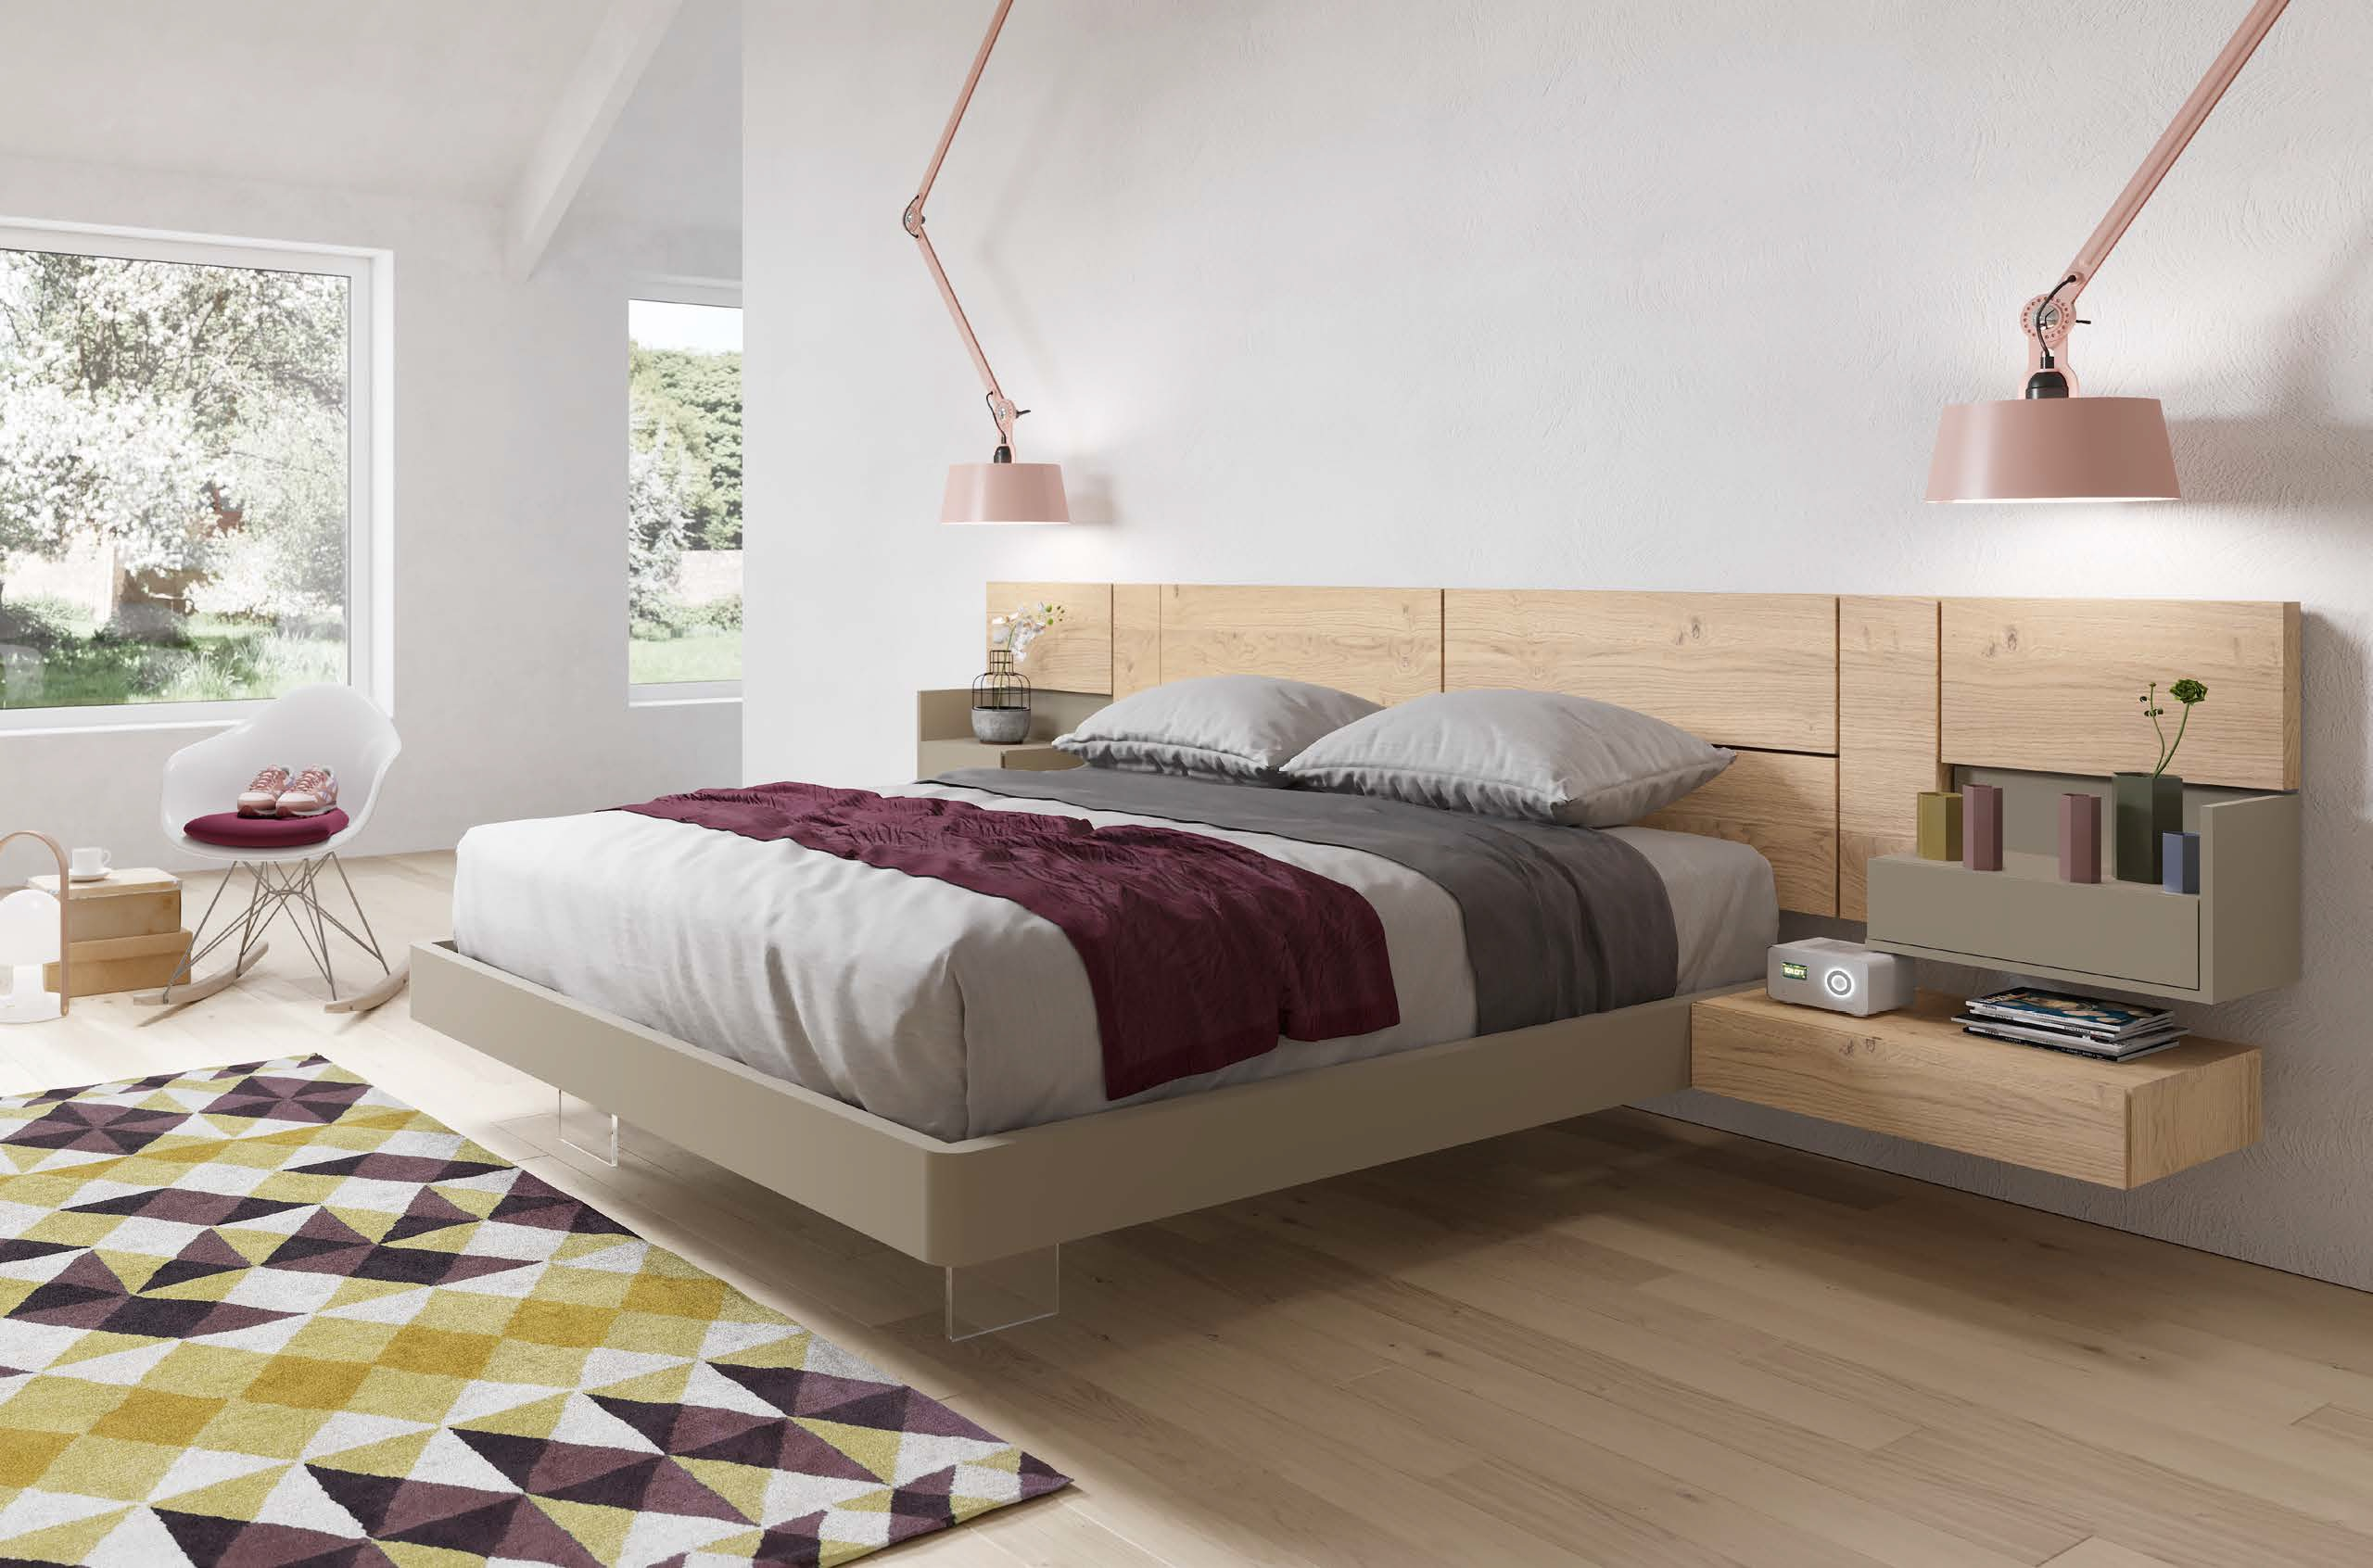 moderno-1-YOU-AND-ME-muebles-paco-caballero-633-5c9cfcdb2ea34